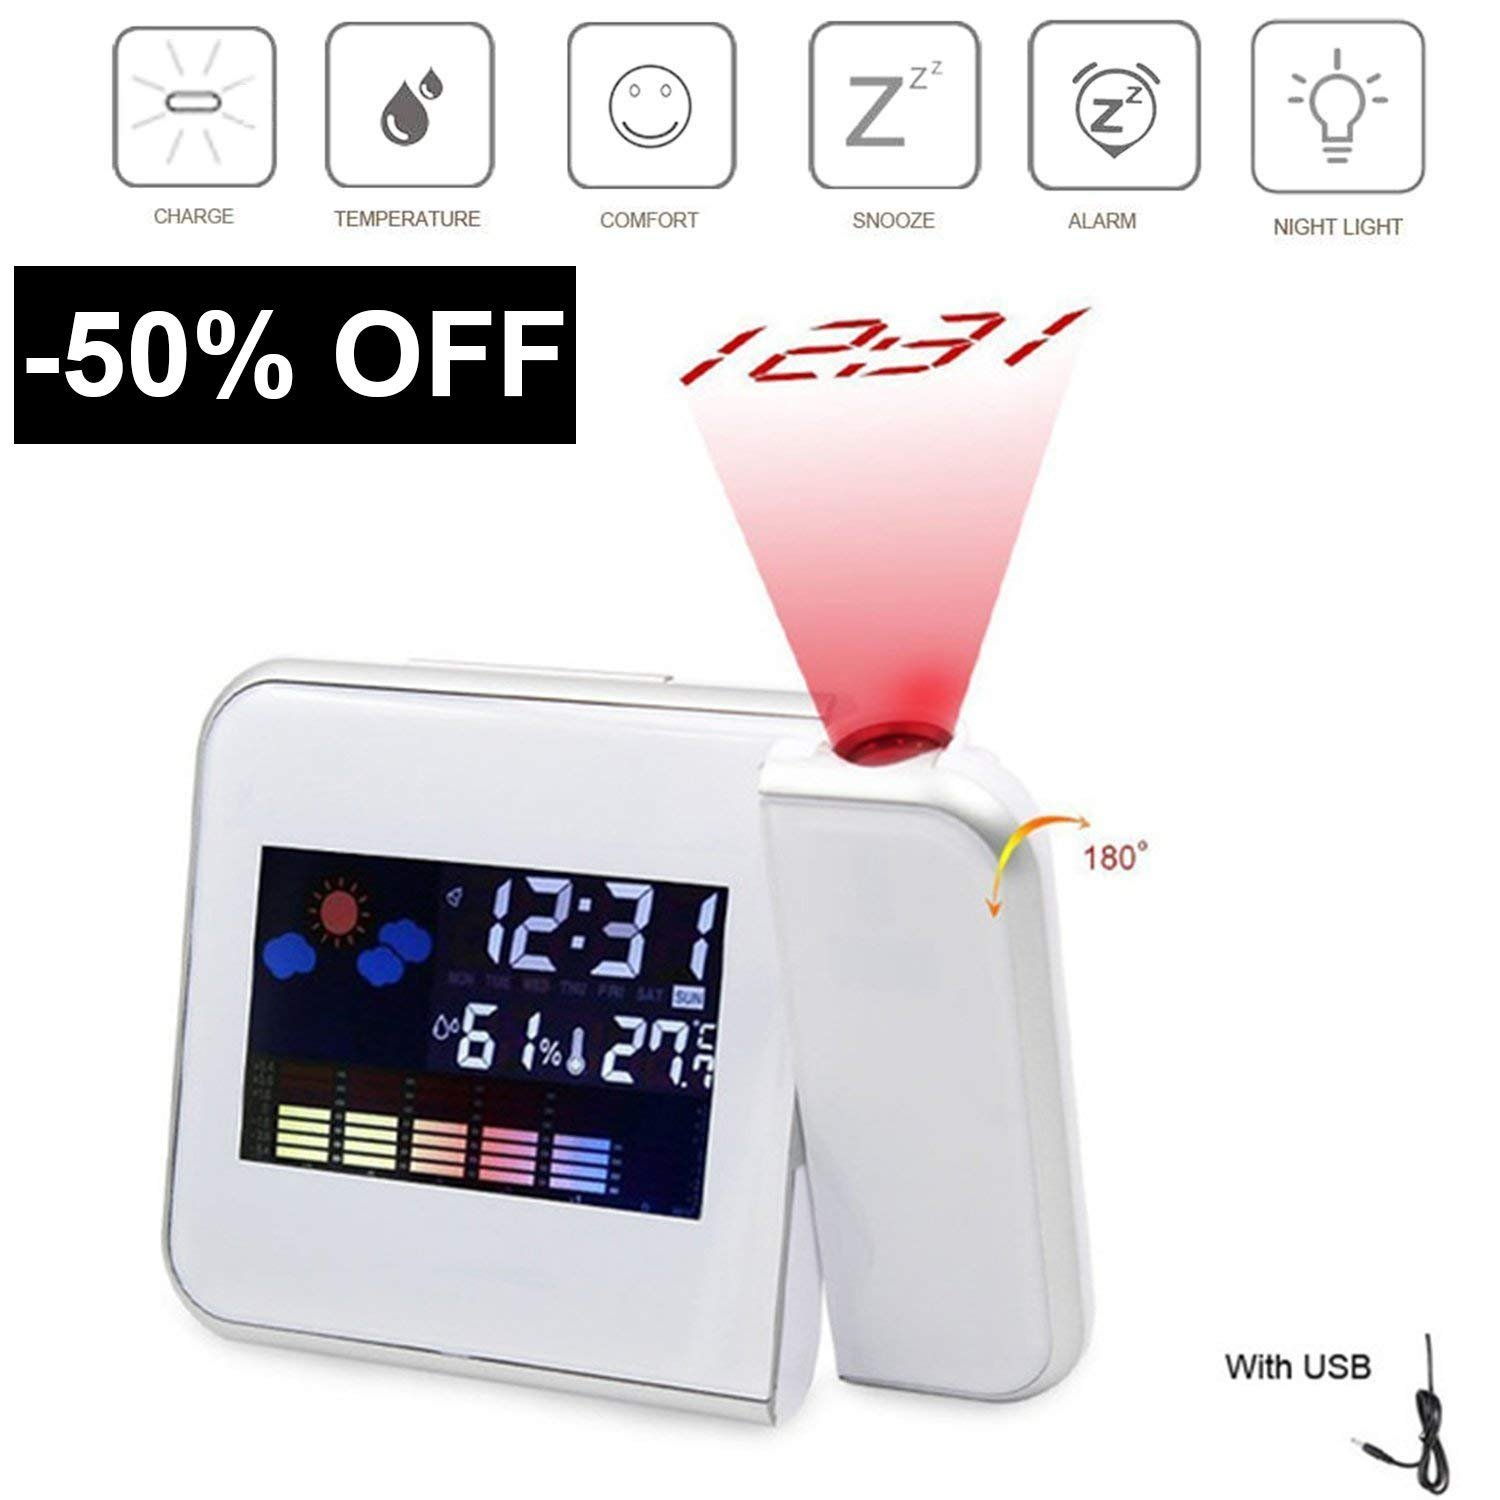 Multi-function Digital Projection Alarm Clock With Weather Station Electronic Desk Clock With Time Projection Bedside Wake Up Projector Watch (white)